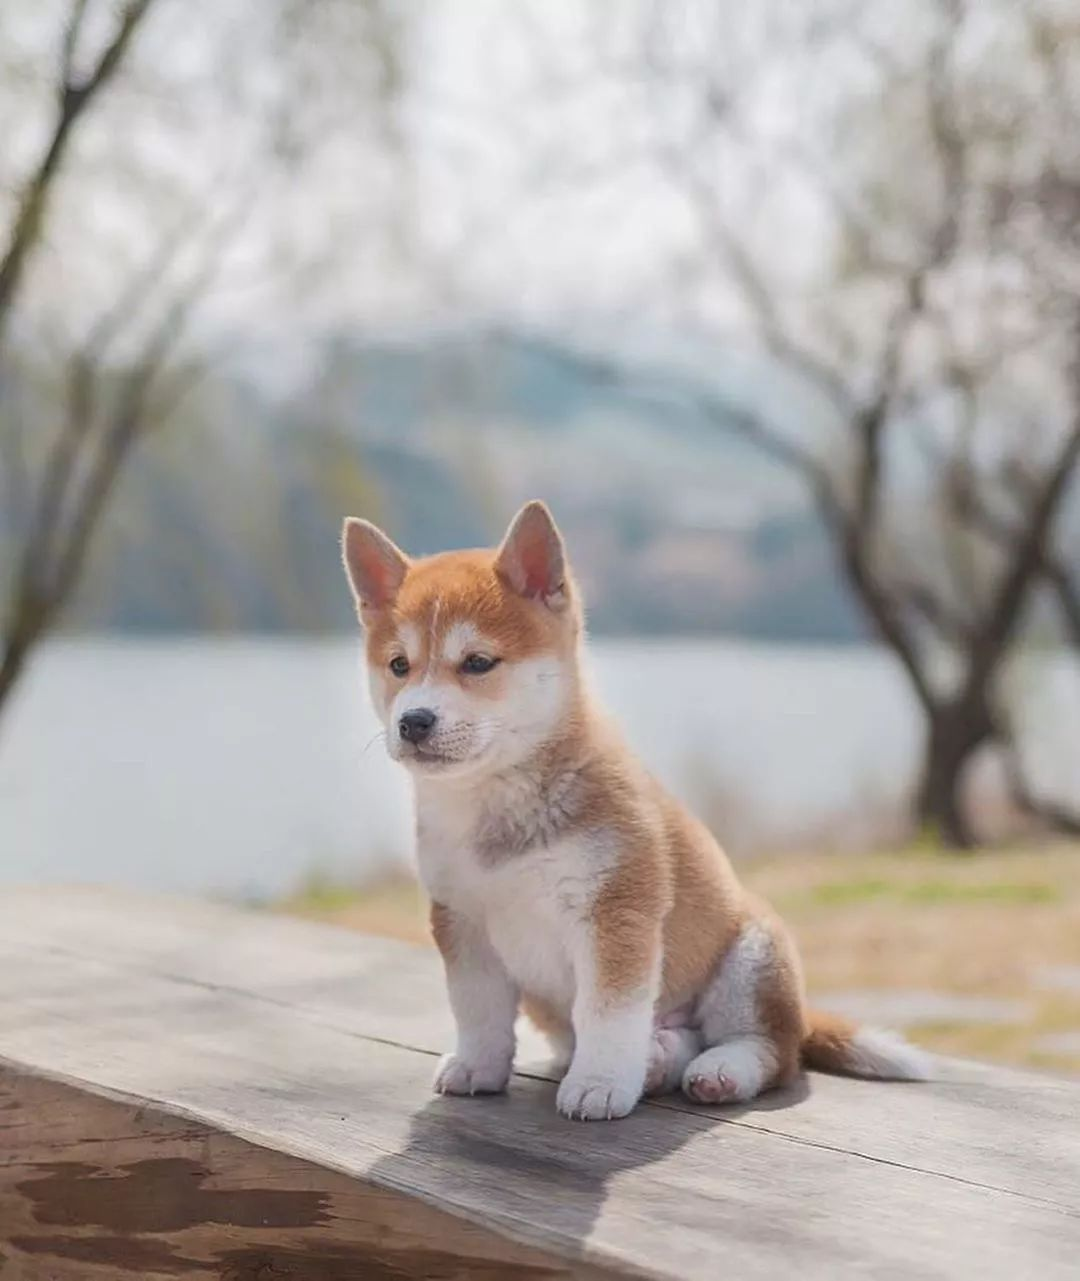 Pin By Aero Wang On Aero S Recommendations Cute Puppies Cute Dogs And Puppies Cute Animals